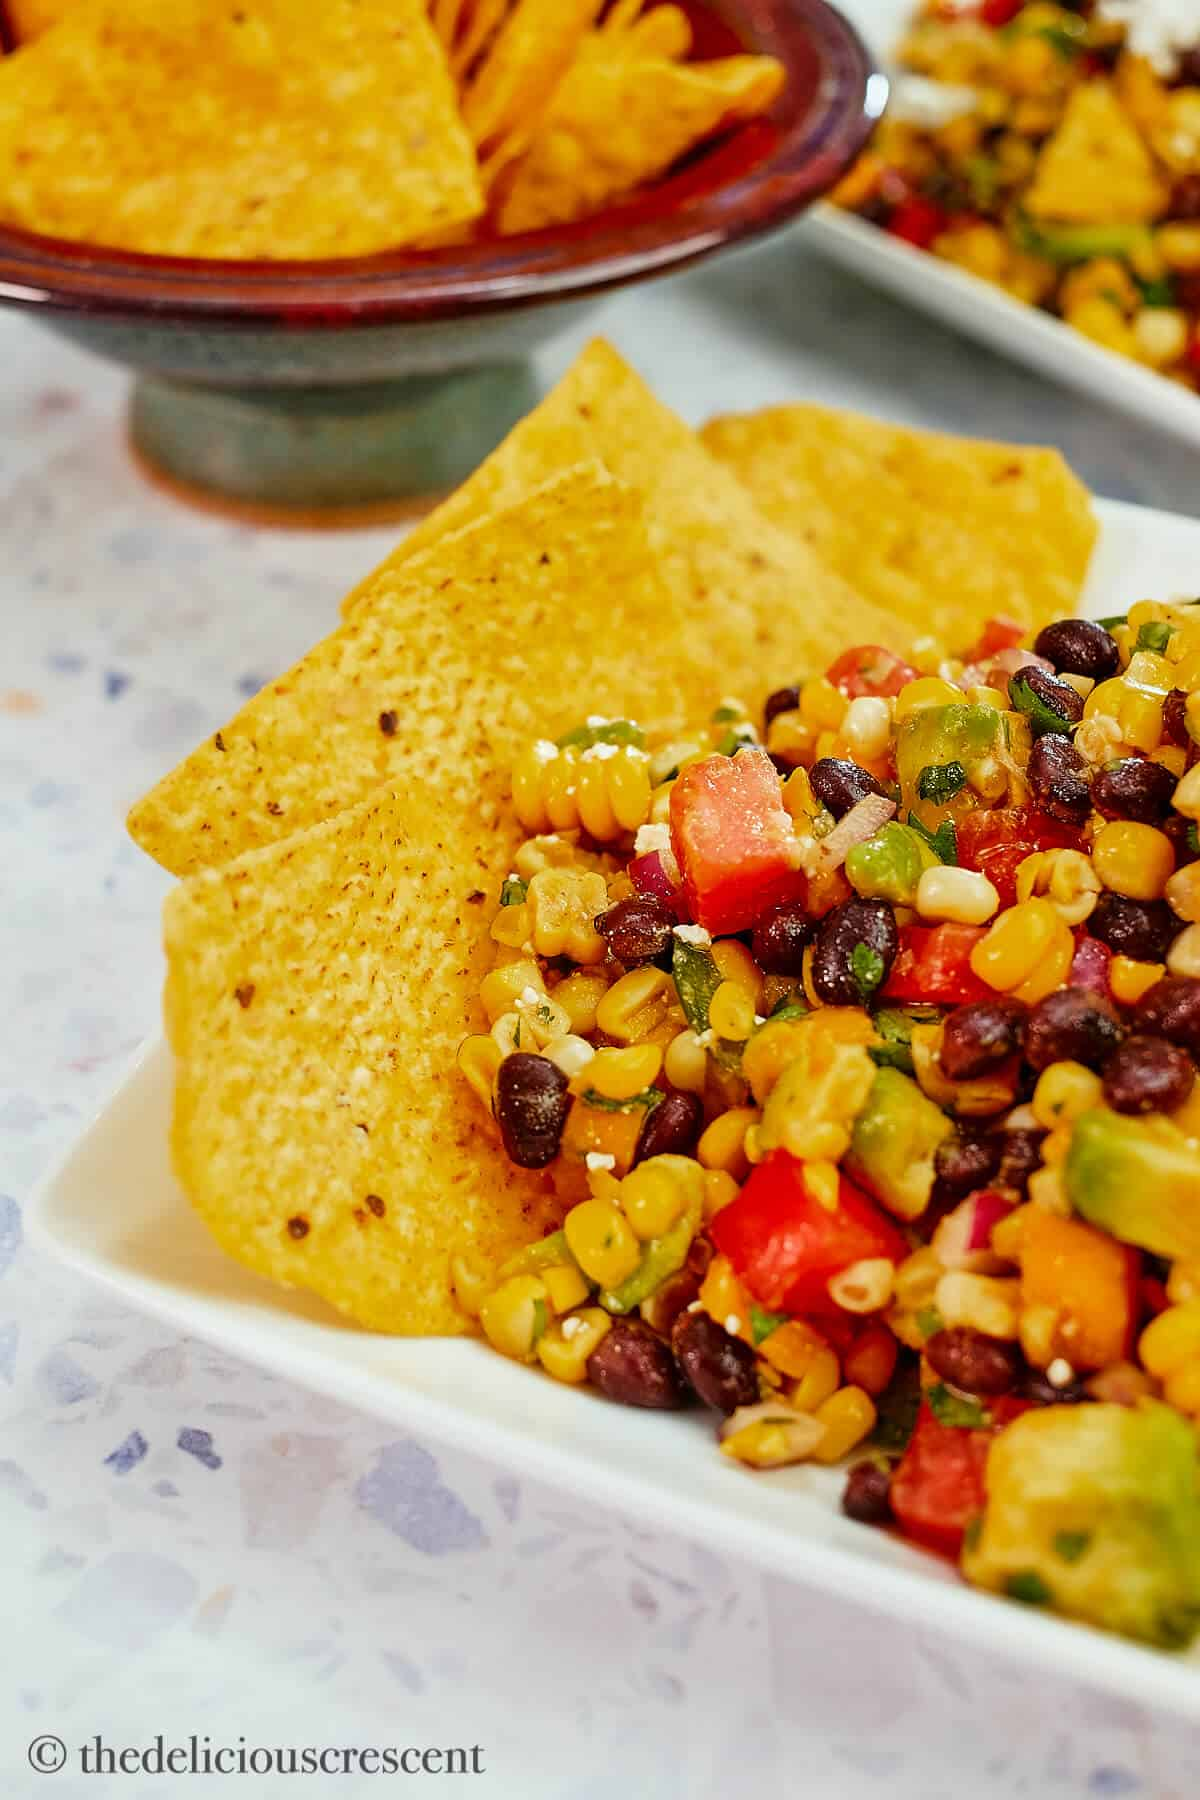 A stack of corn chips placed around corn salad.